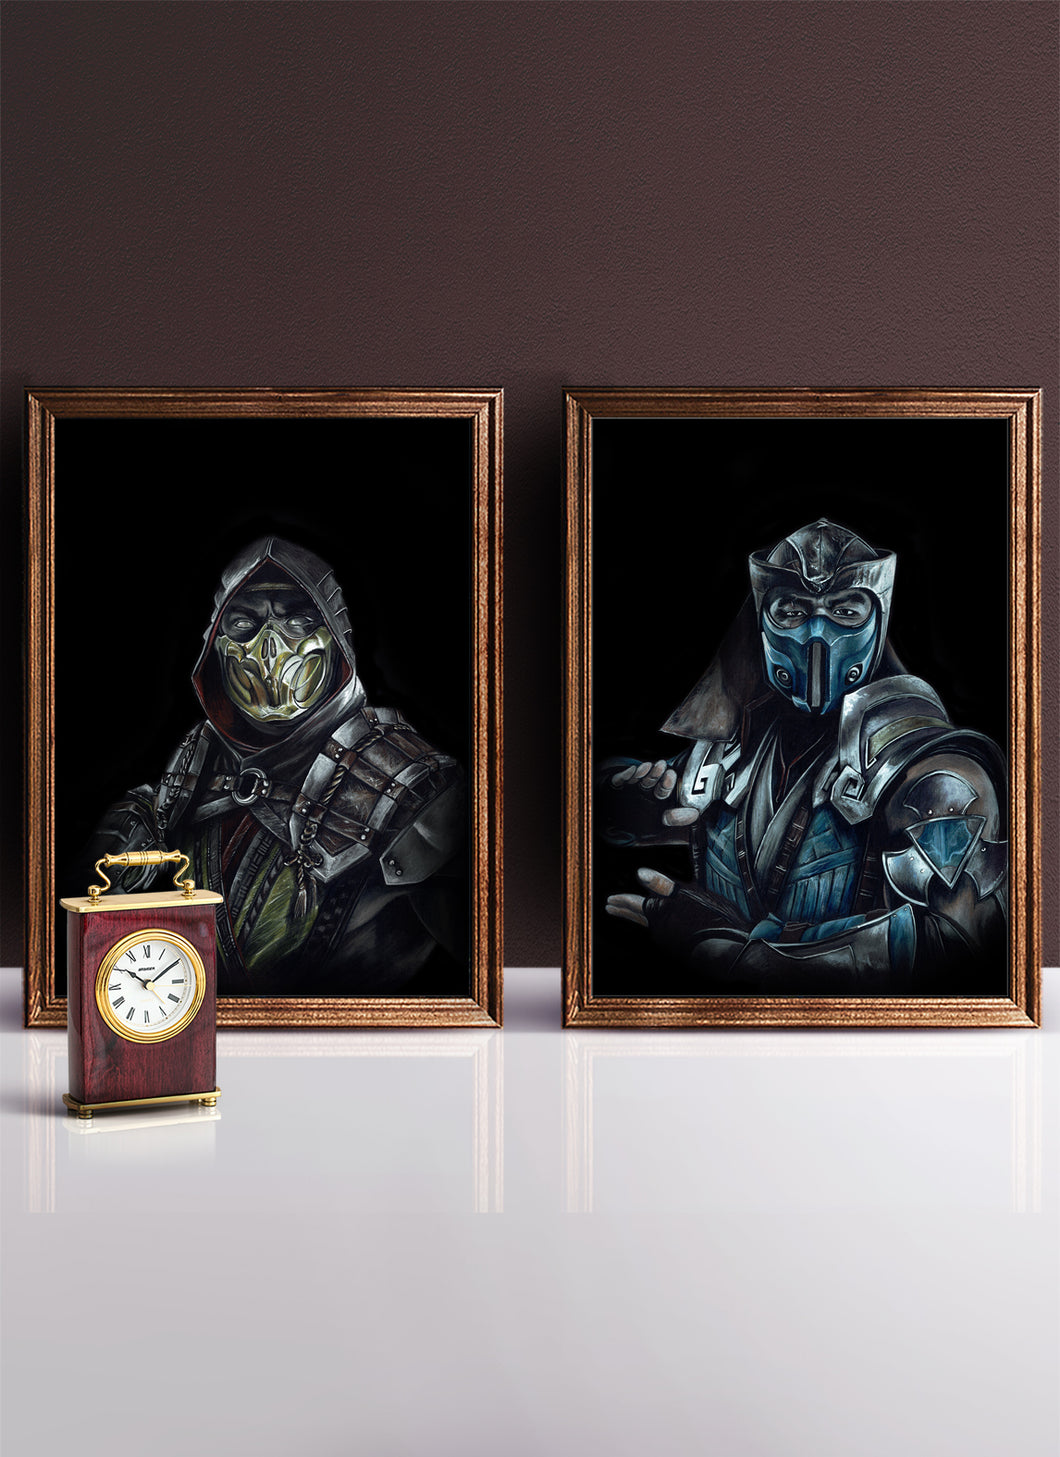 Scorpion vs SubZero/Print Set/Limited Edition/Hand Drawing by Wil Shrike